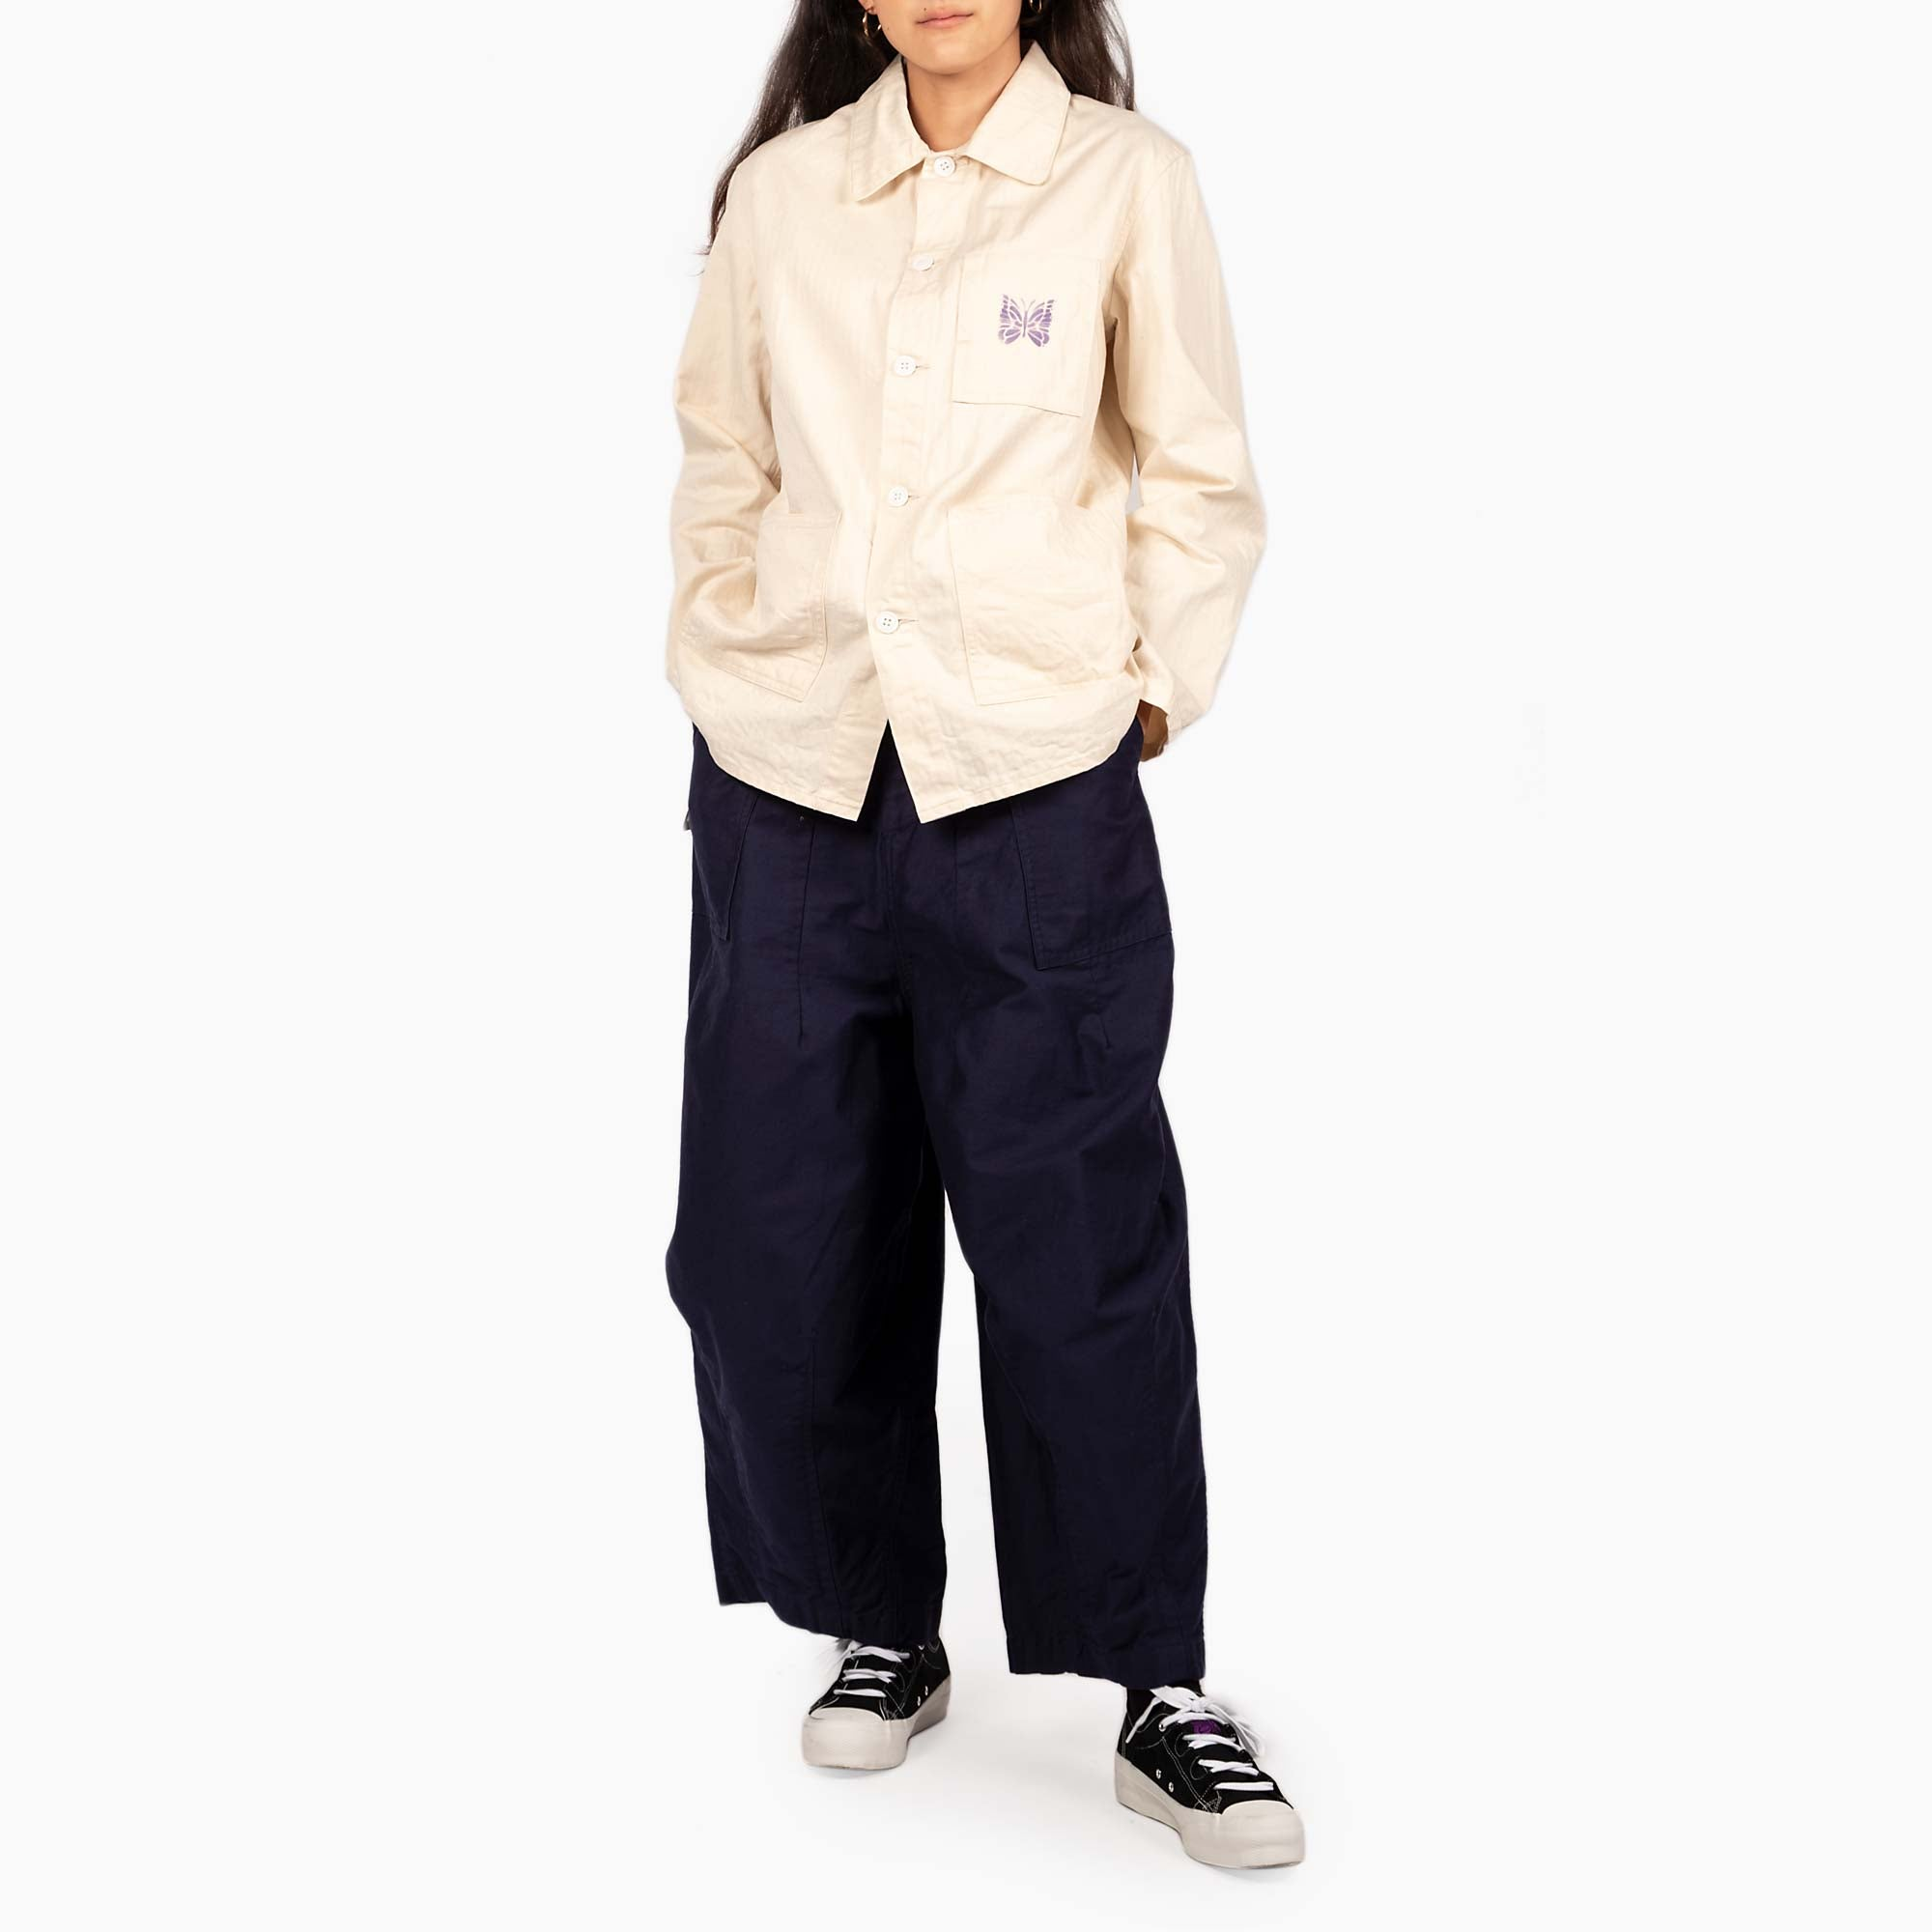 Needles Women's D.N. Coverall Jacket - Off White 2